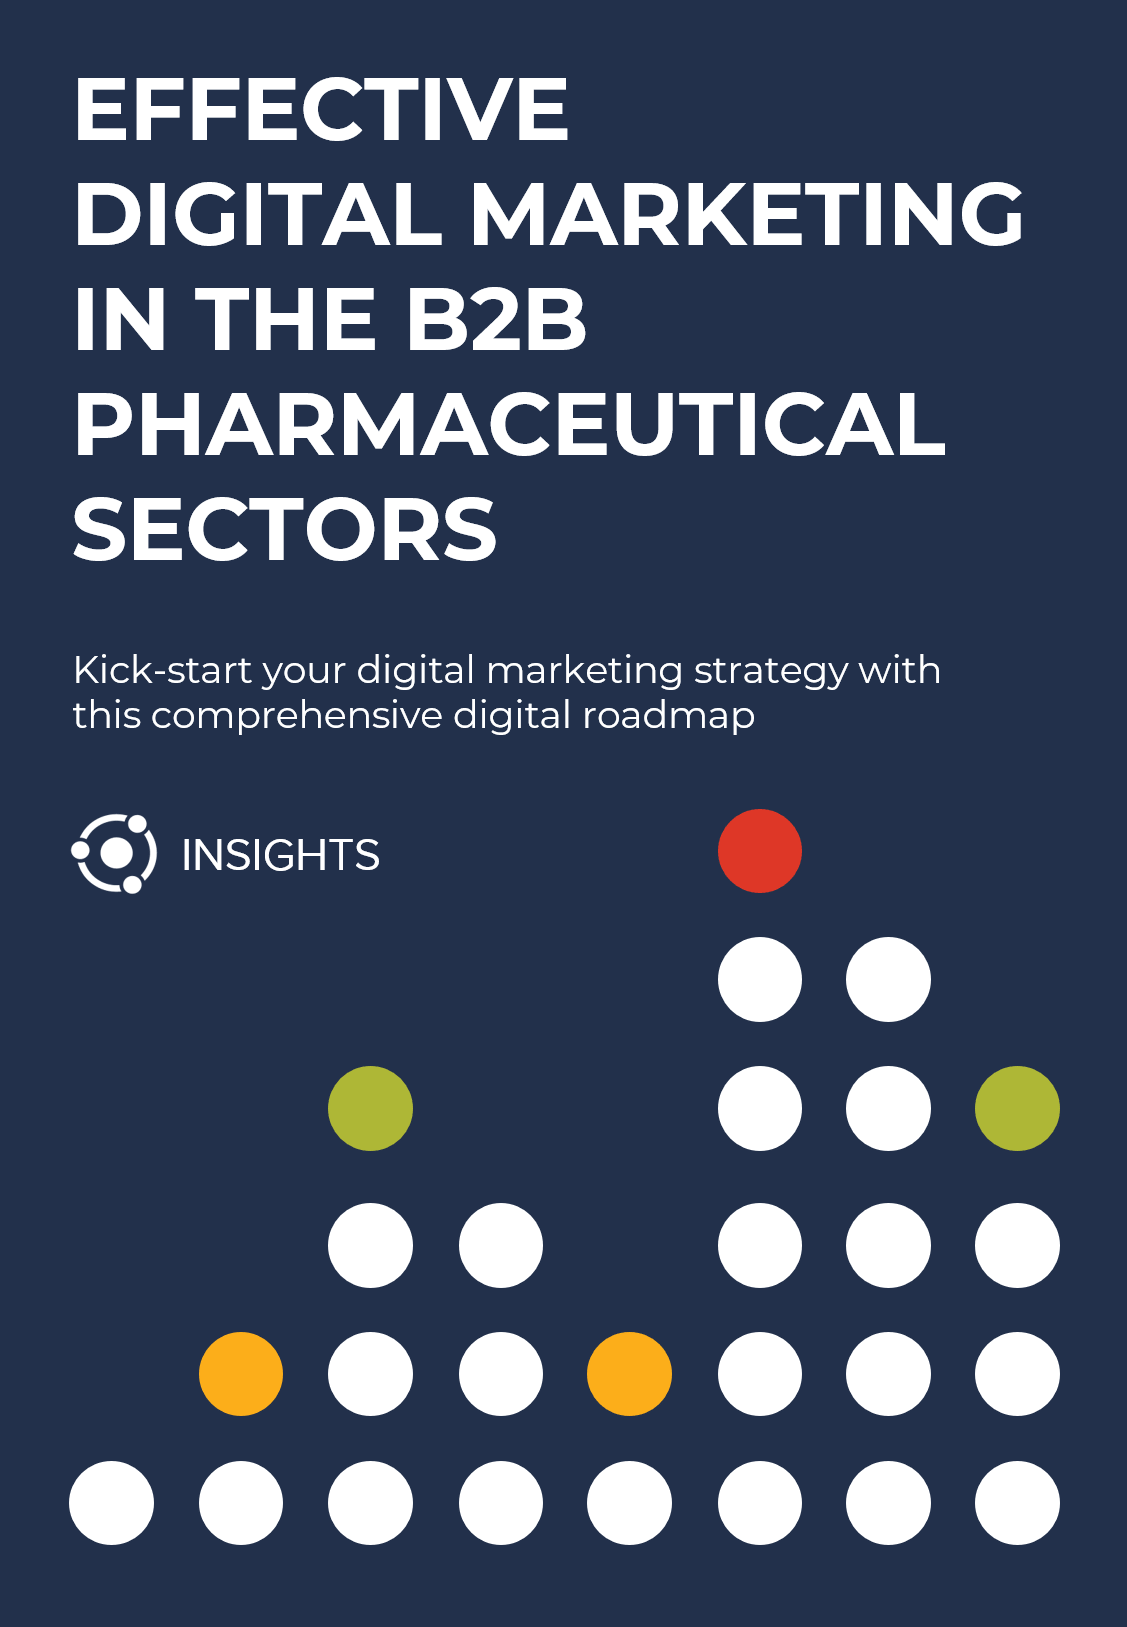 Digital Marketing in the B2B pharmaceutical sectors.png